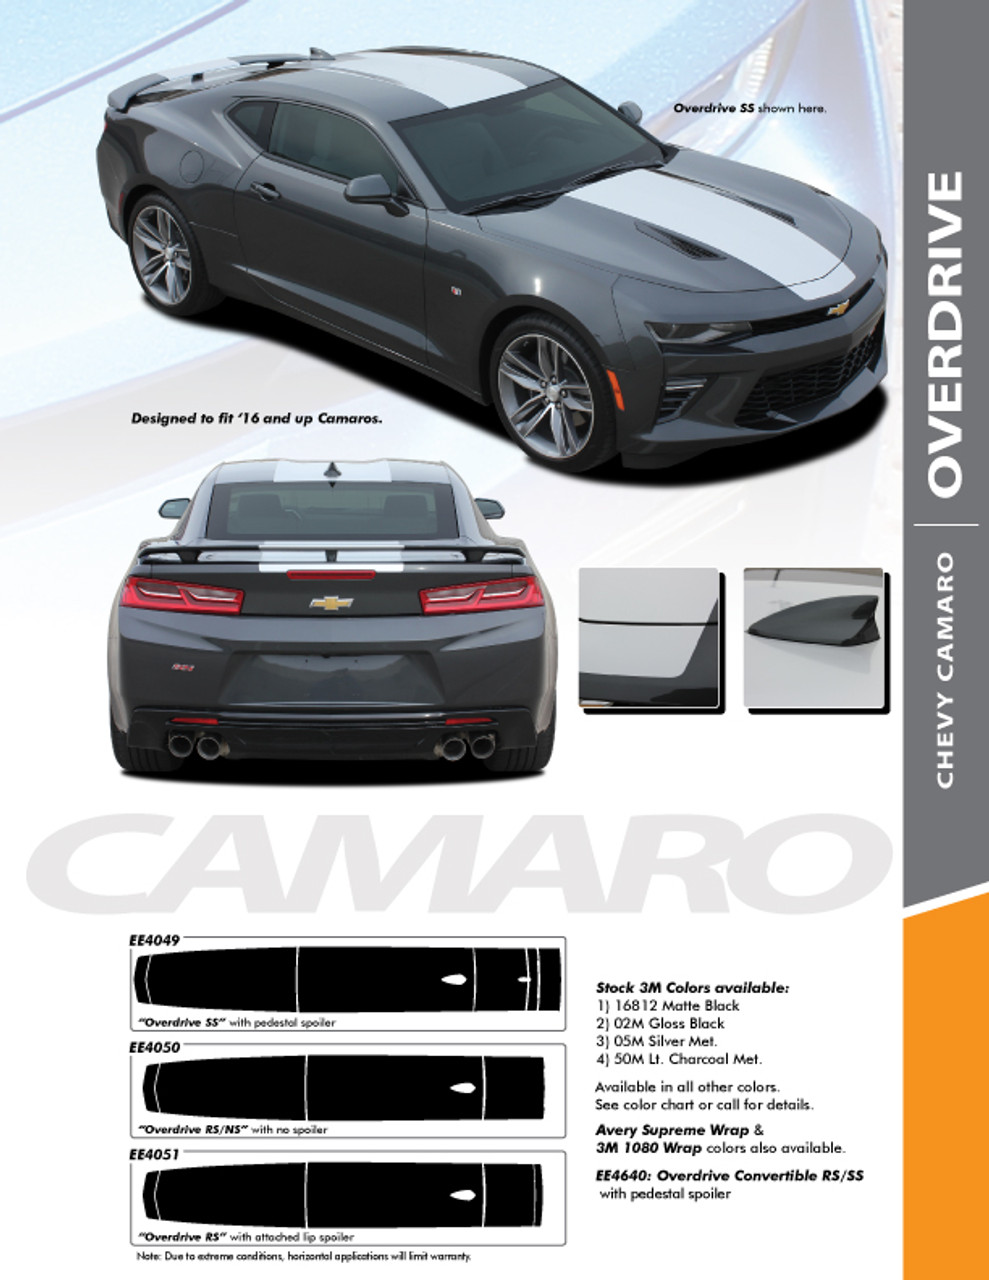 Overdrive chevy camaro center wide hood racing stripes rally vinyl graphics and also graphic decal rh prodesignseries